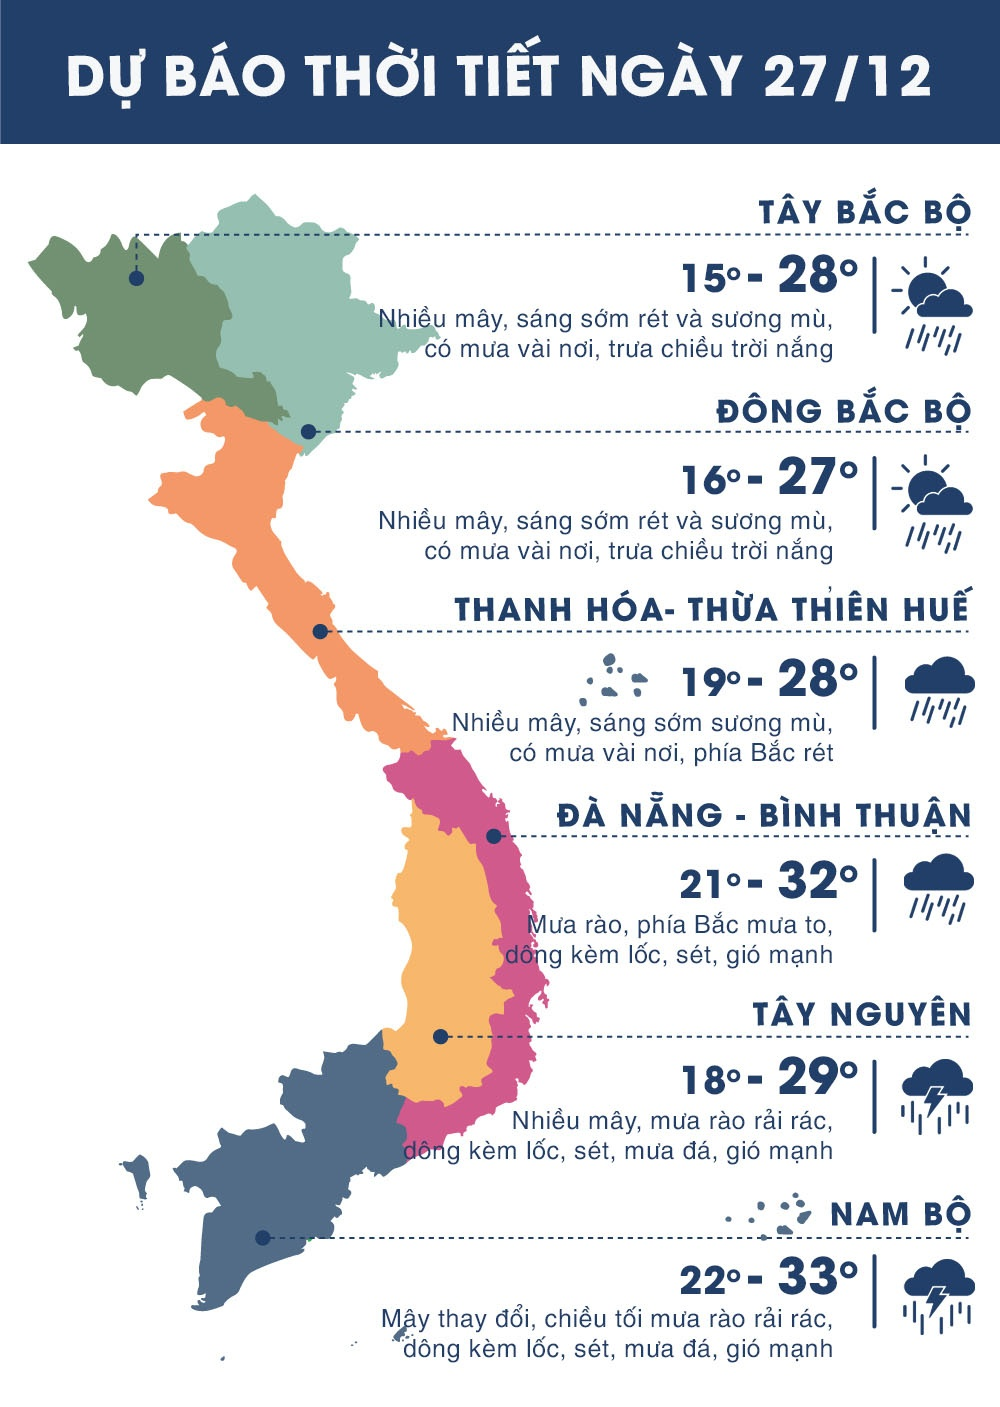 thoi tiet ngay 27/12 anh 1